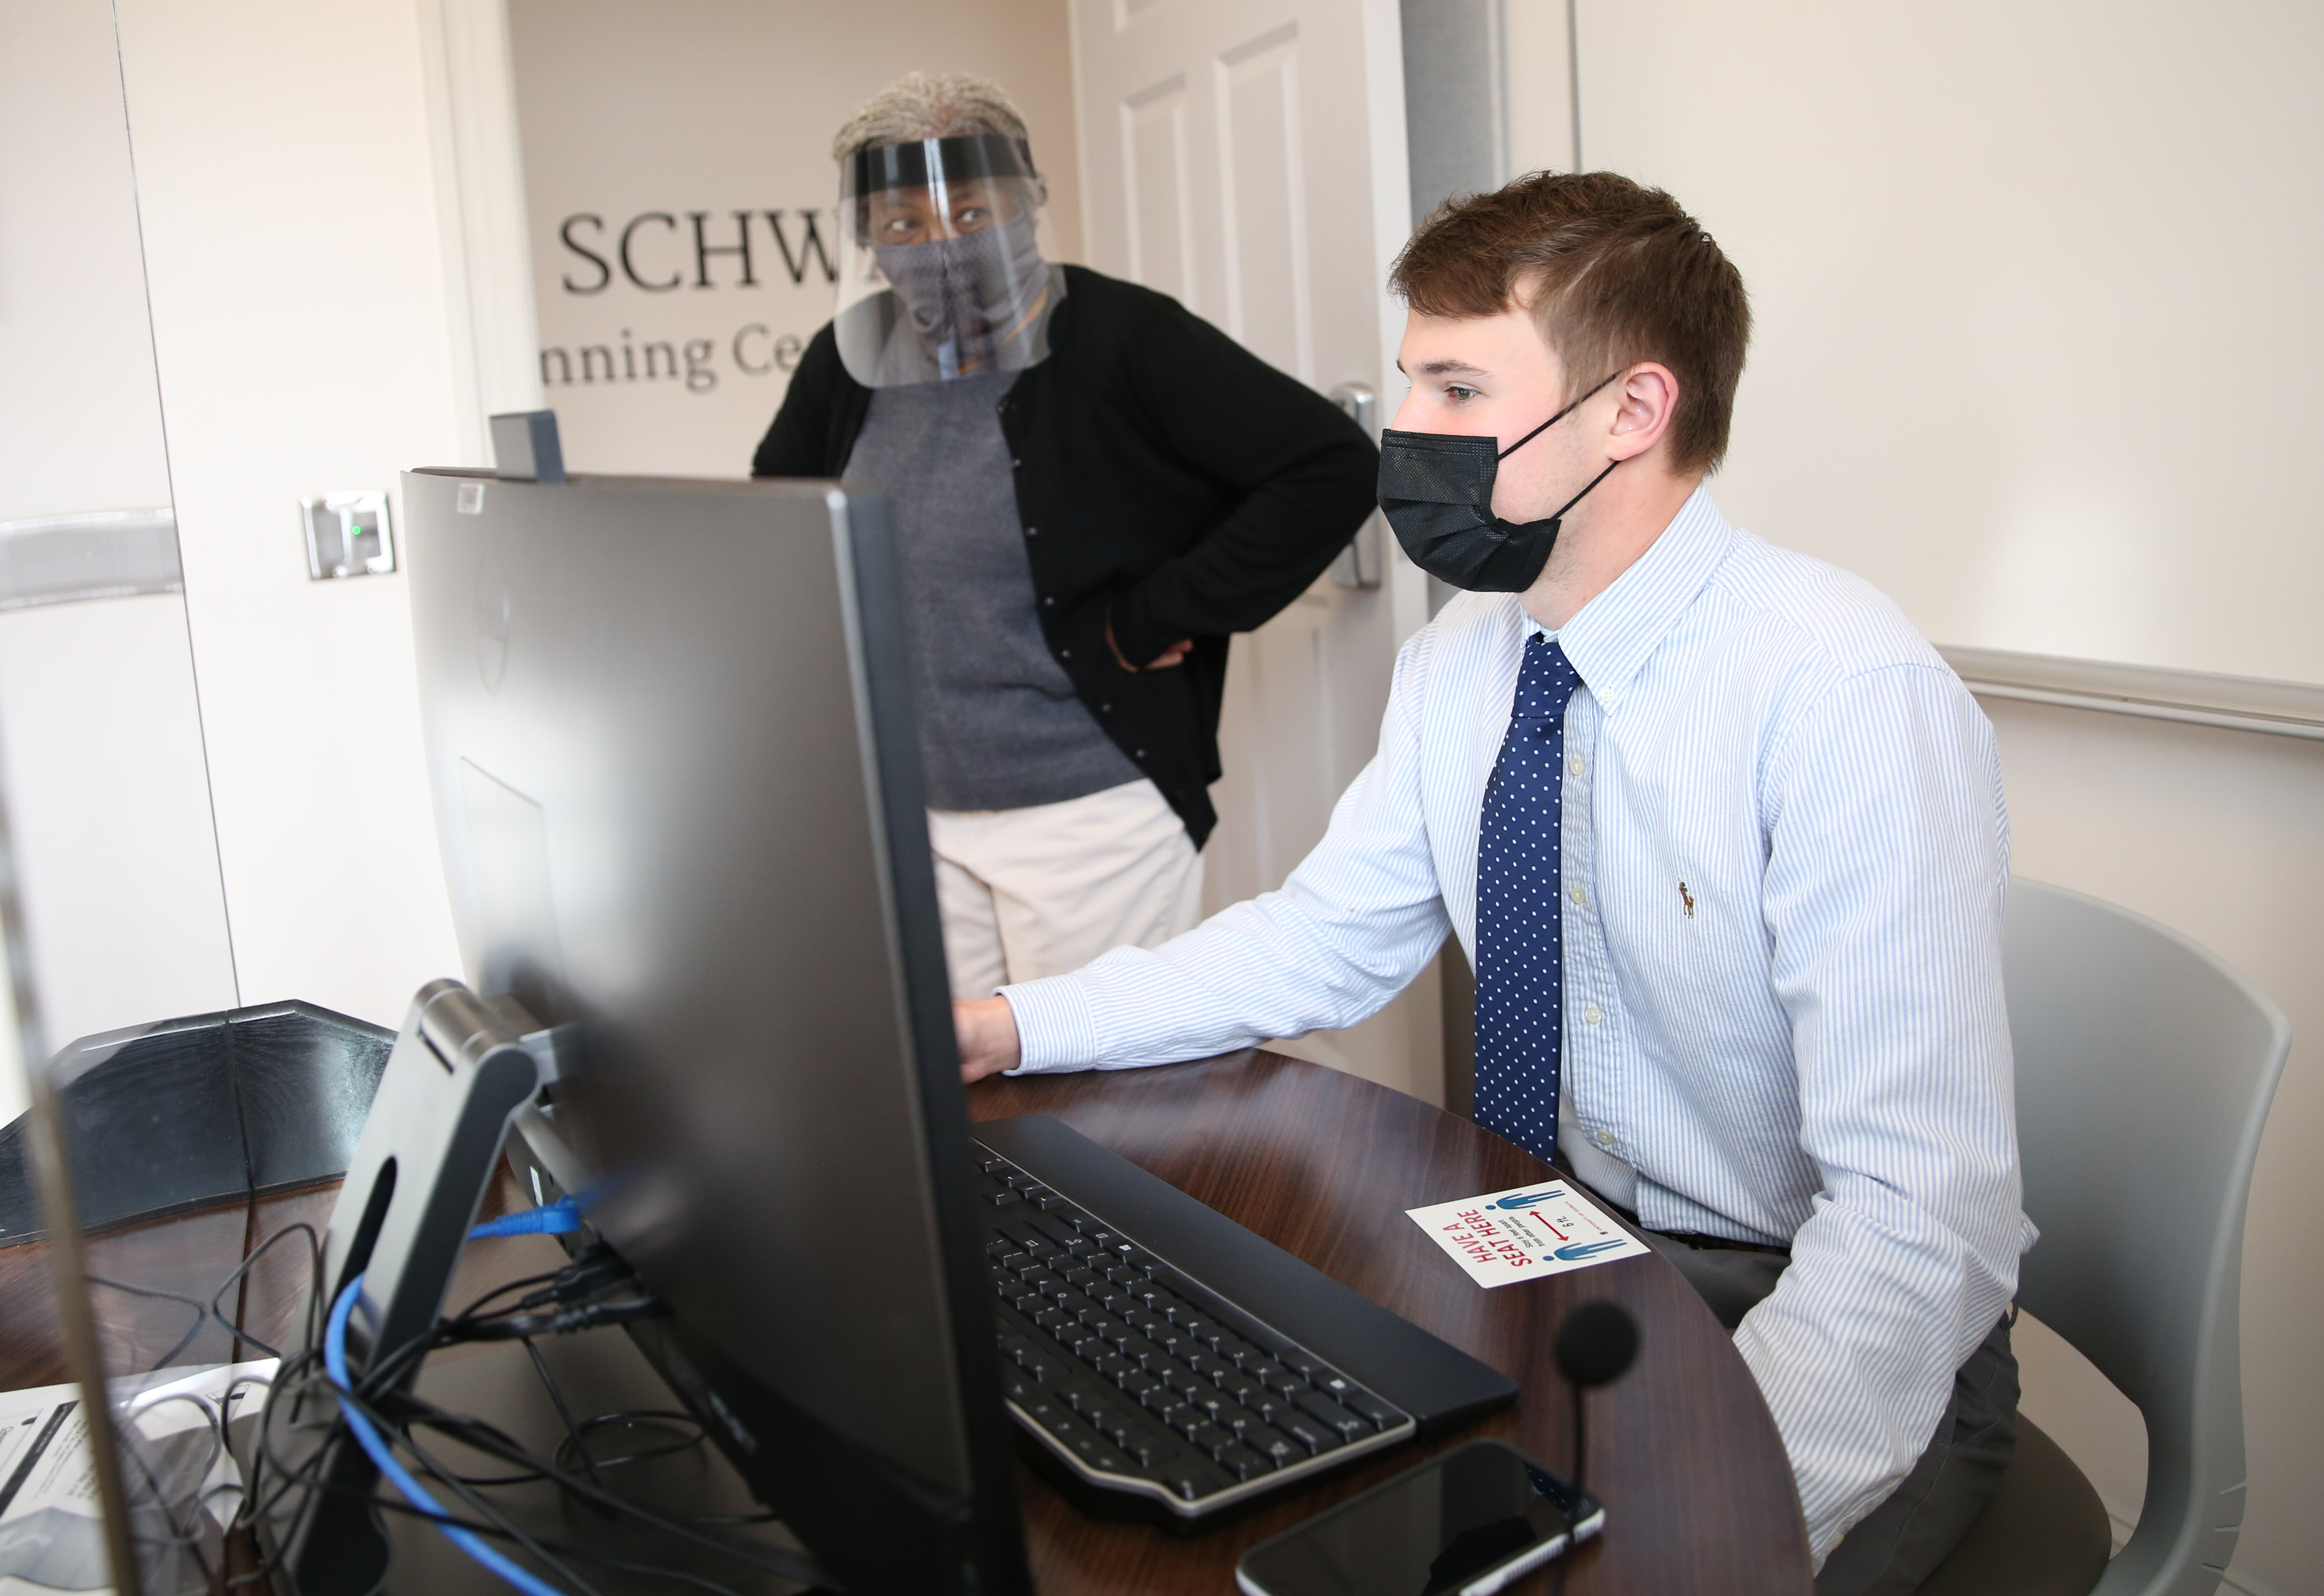 Blake Ertzberger, a financial planning major and student service provider in the UGA College of Family and Consumer Sciences, gets instruction from Joan Koonce, a FACS professor and UGA Extension financial planning specialist, as part of the VITA program at UGA.